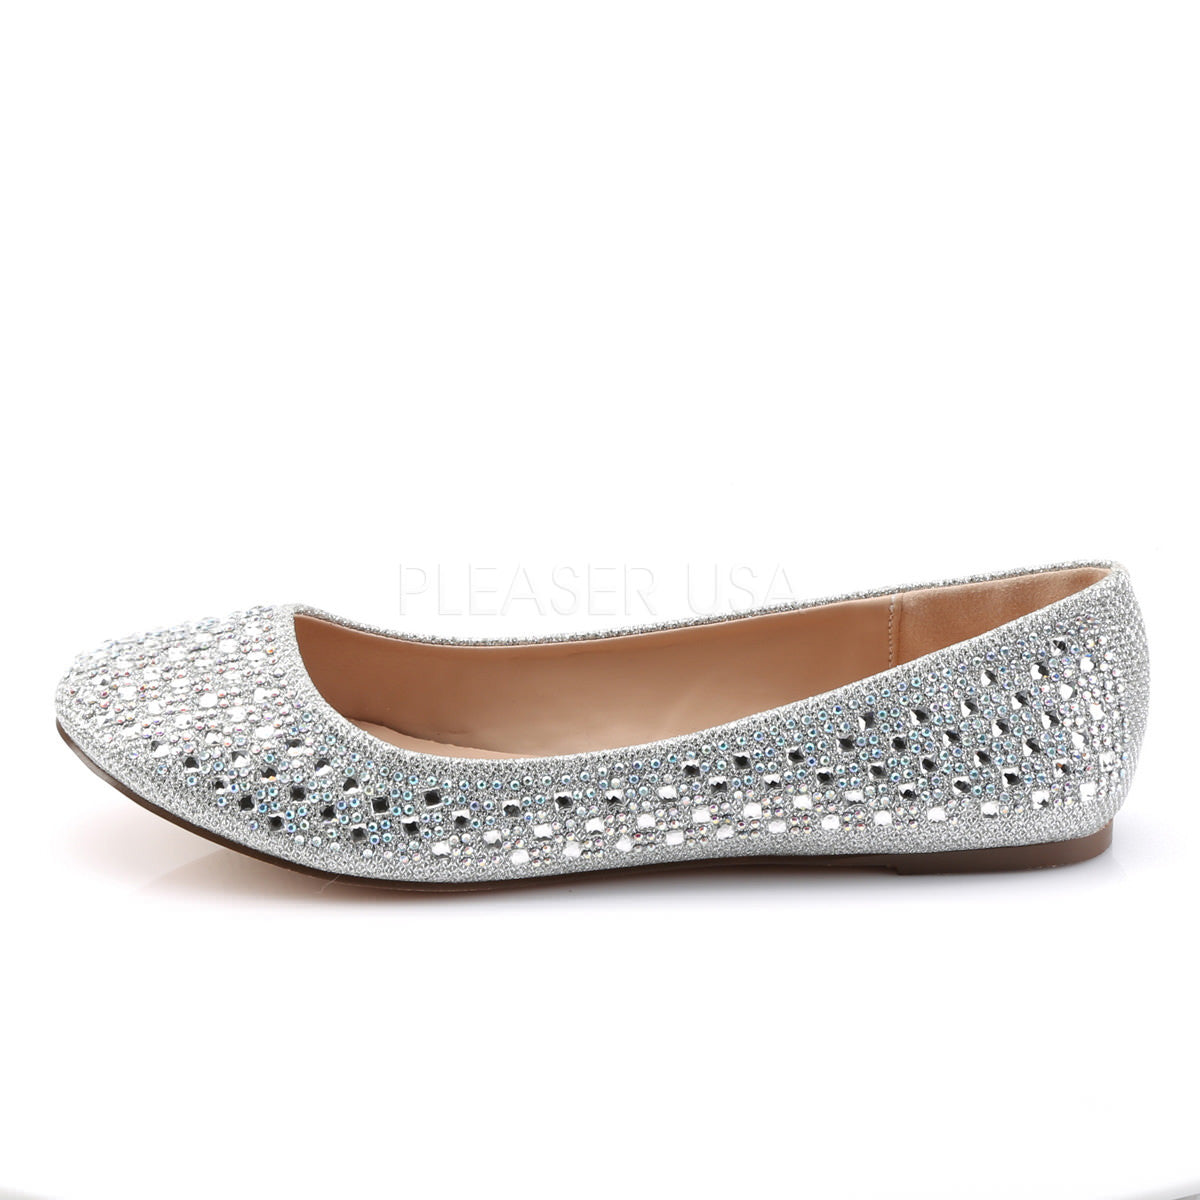 3238afb8b9f3 Fabulicious TREAT-06 Silver Glitter Mesh Fabric Flats. Previous